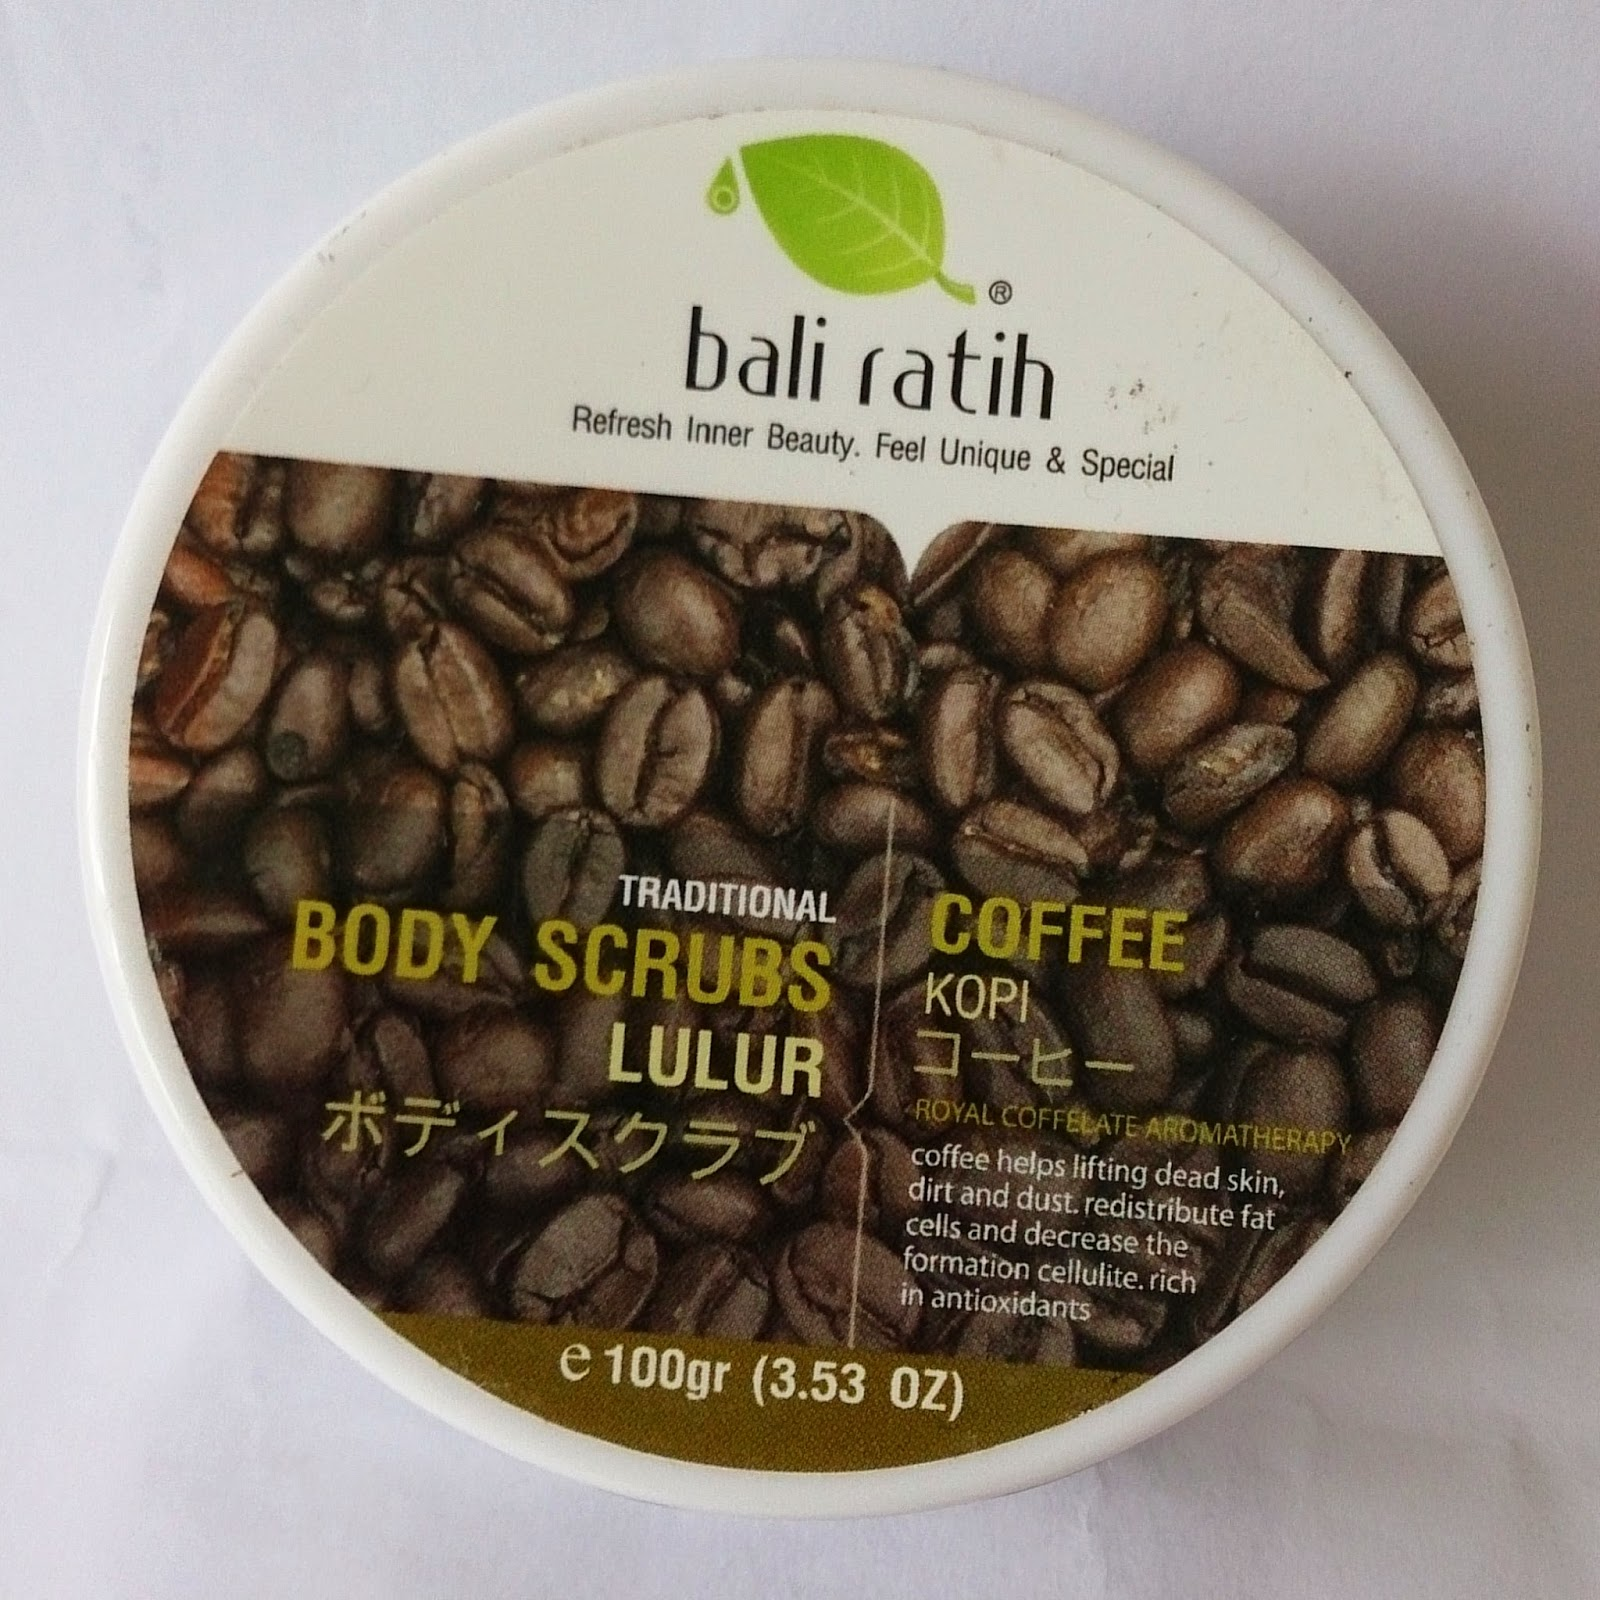 Amalina Skin Food Bali Ratih Body Scrubs Lotion Coffee And Cocoa Bean Are Rich In Antioxidant Very Effective To Prevent The Build Up Cellulite